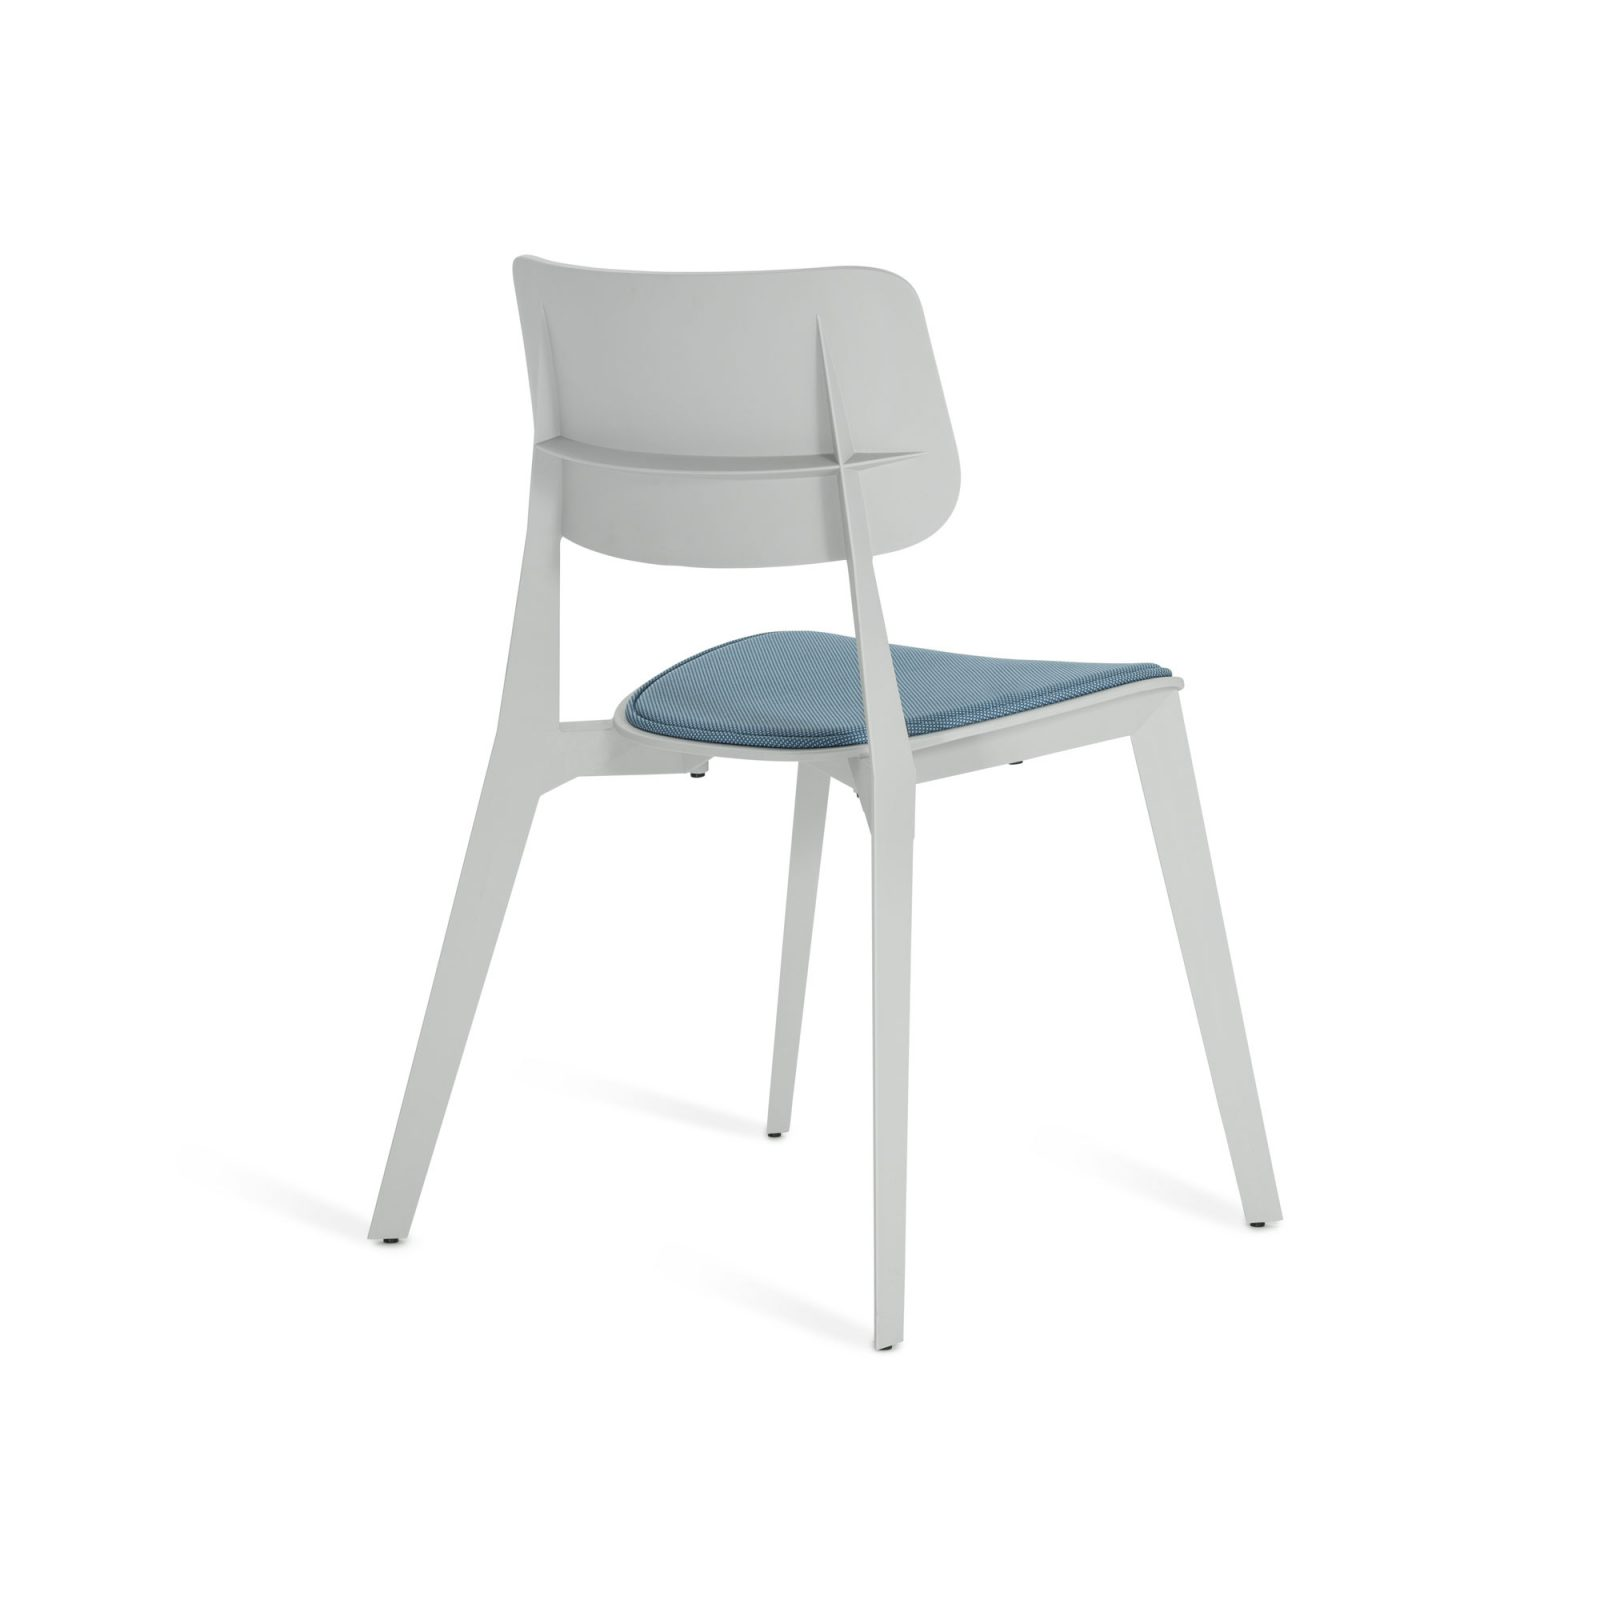 stellar-upholstered-chair-grey-3